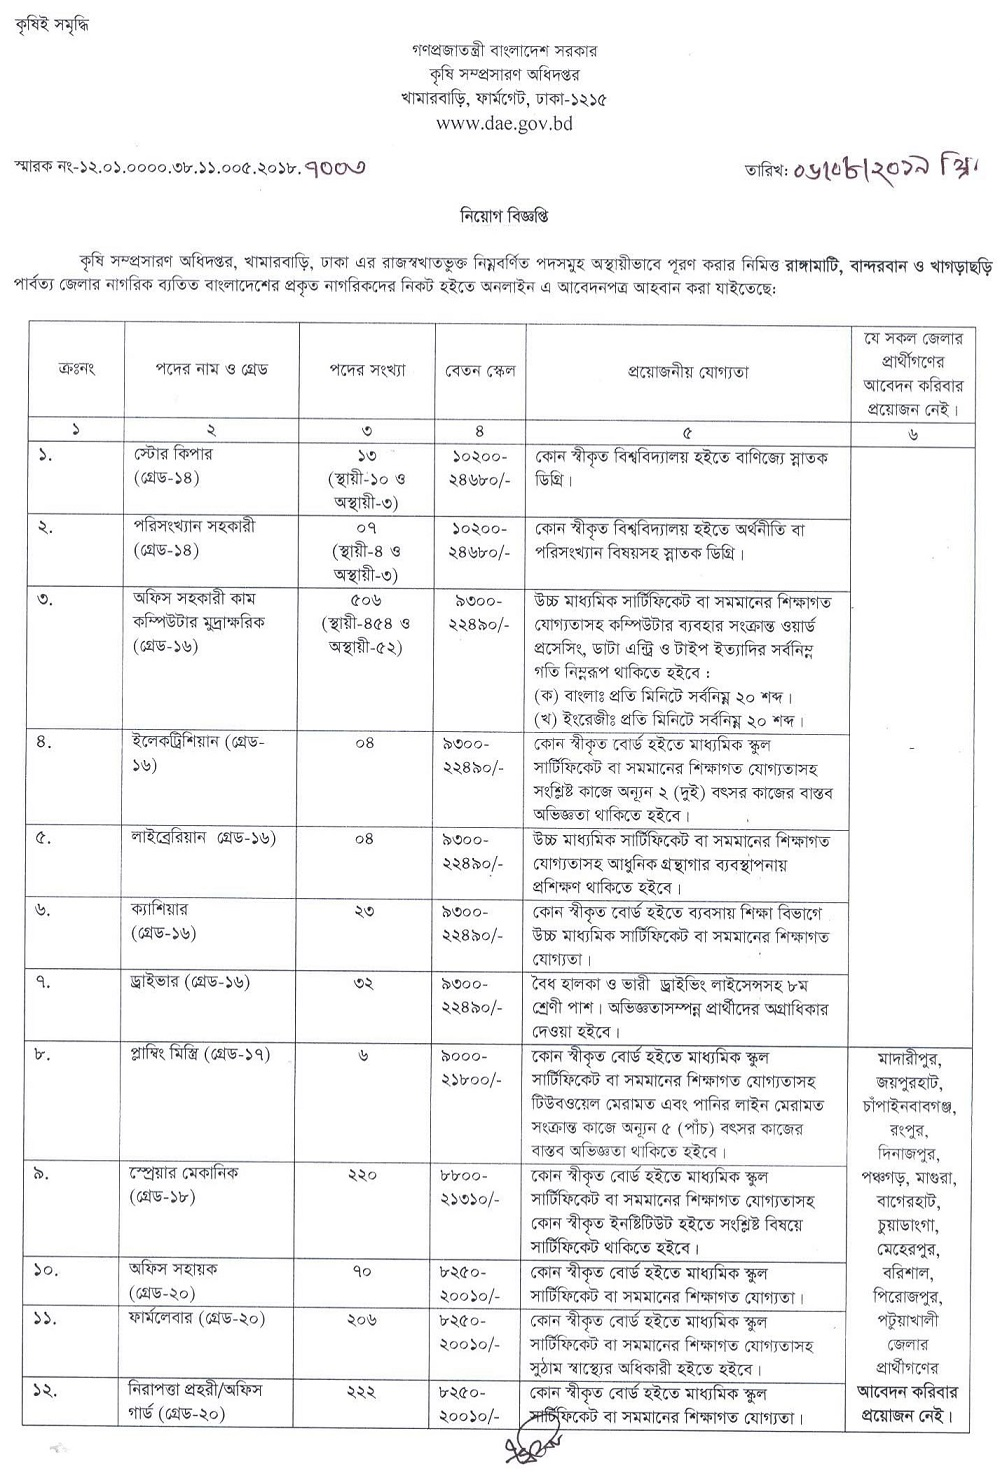 DAE Job Circular Apply 2019